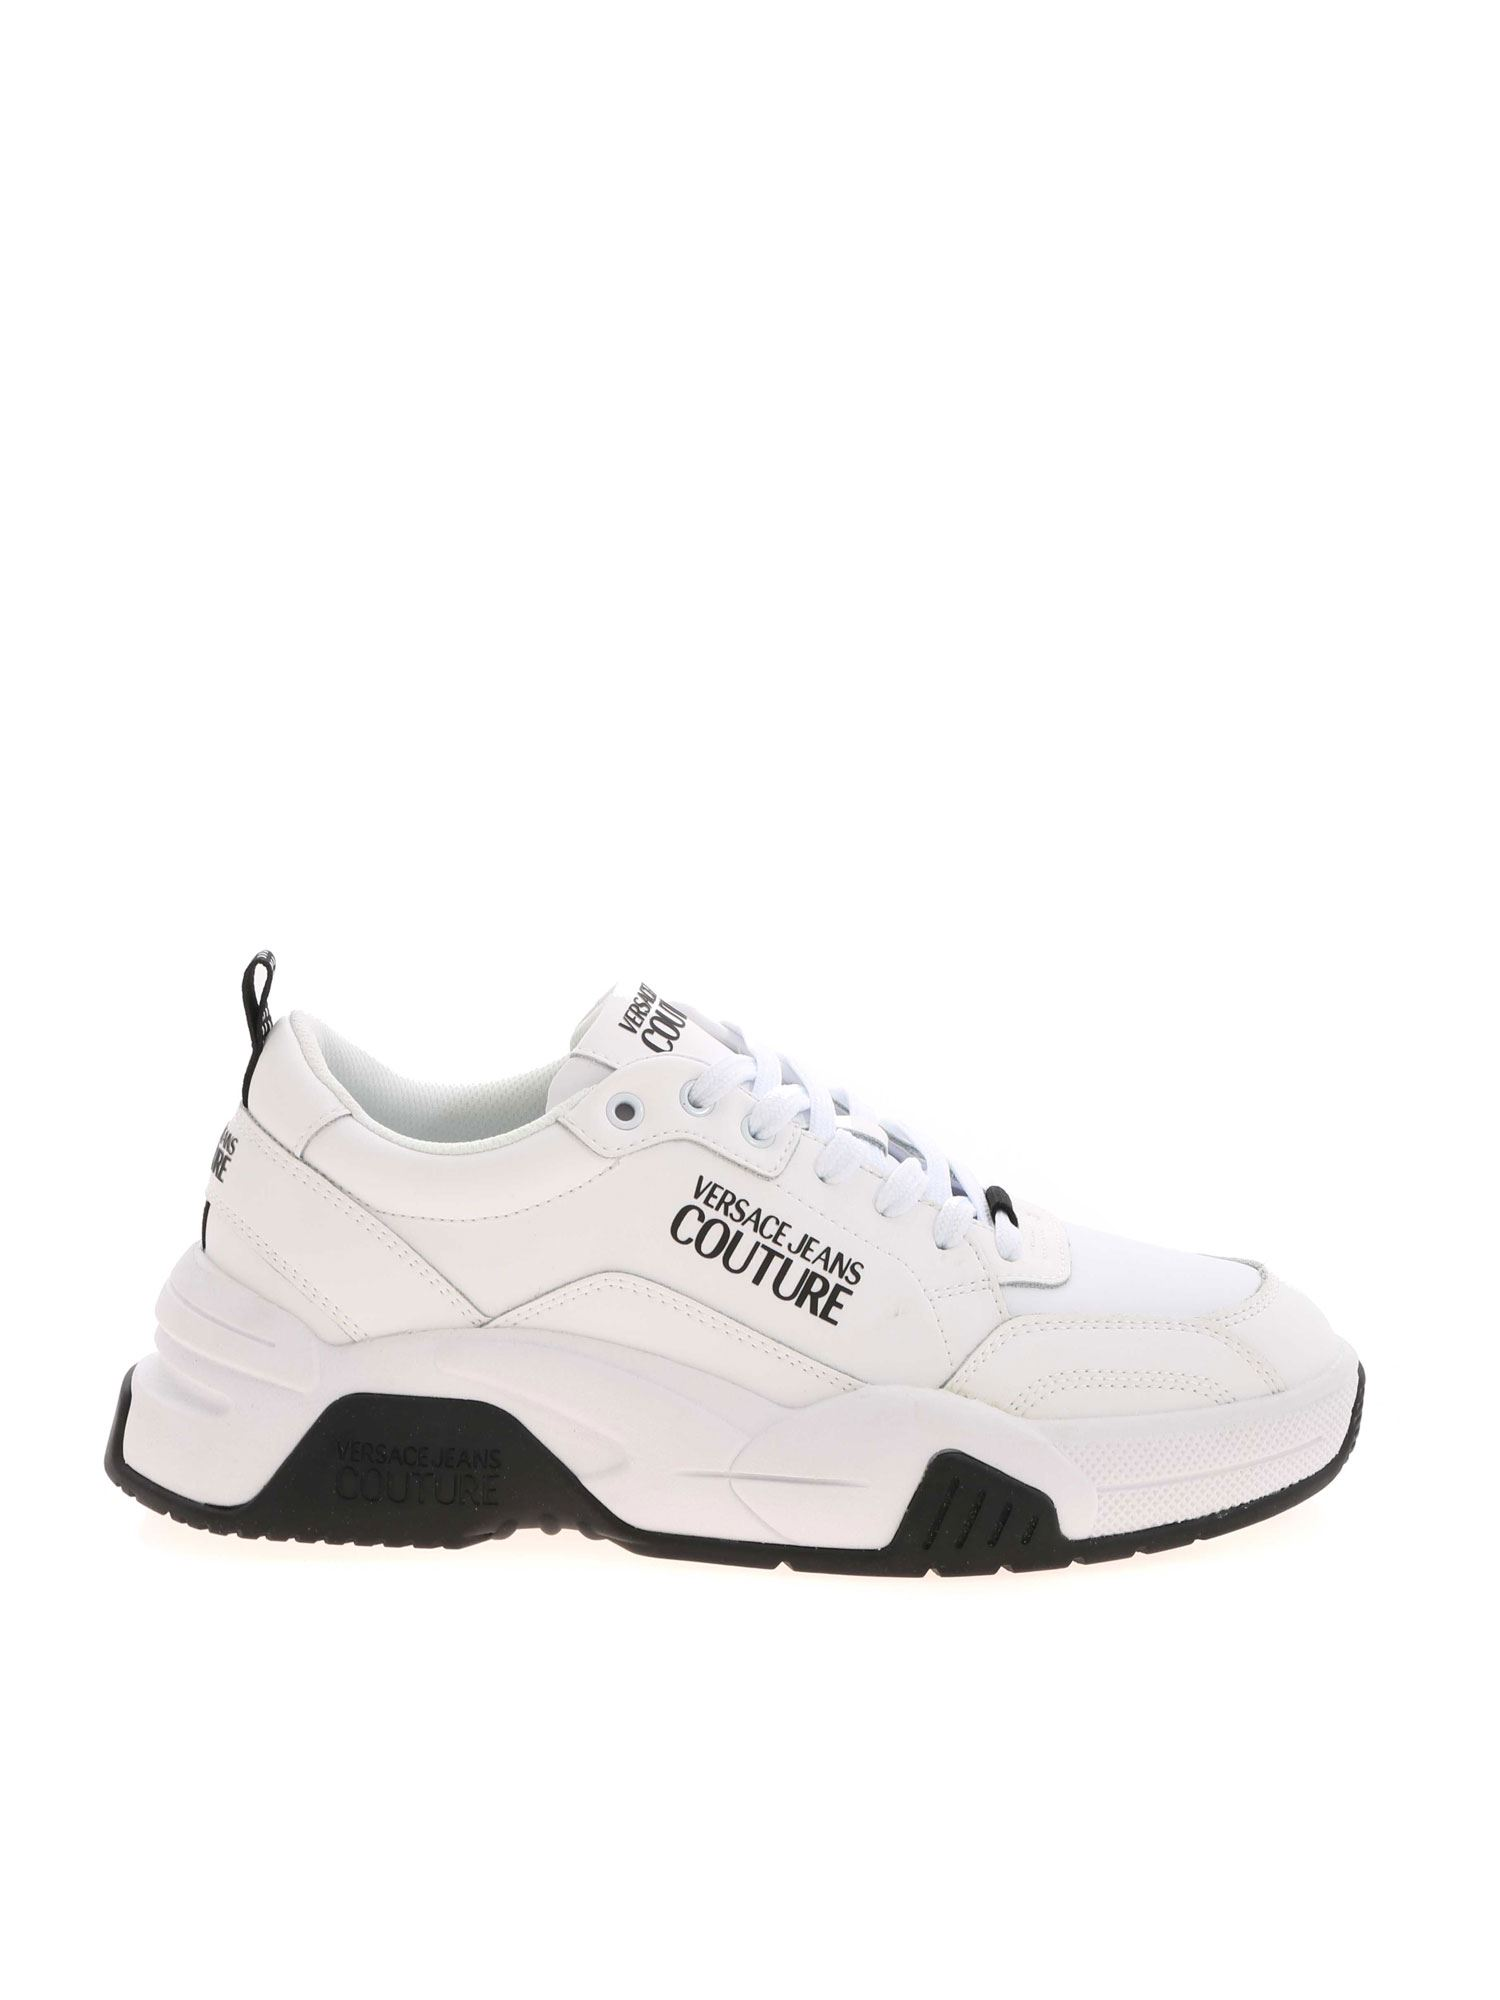 Versace Jeans Couture BRANDED SNEAKERS IN WHITE